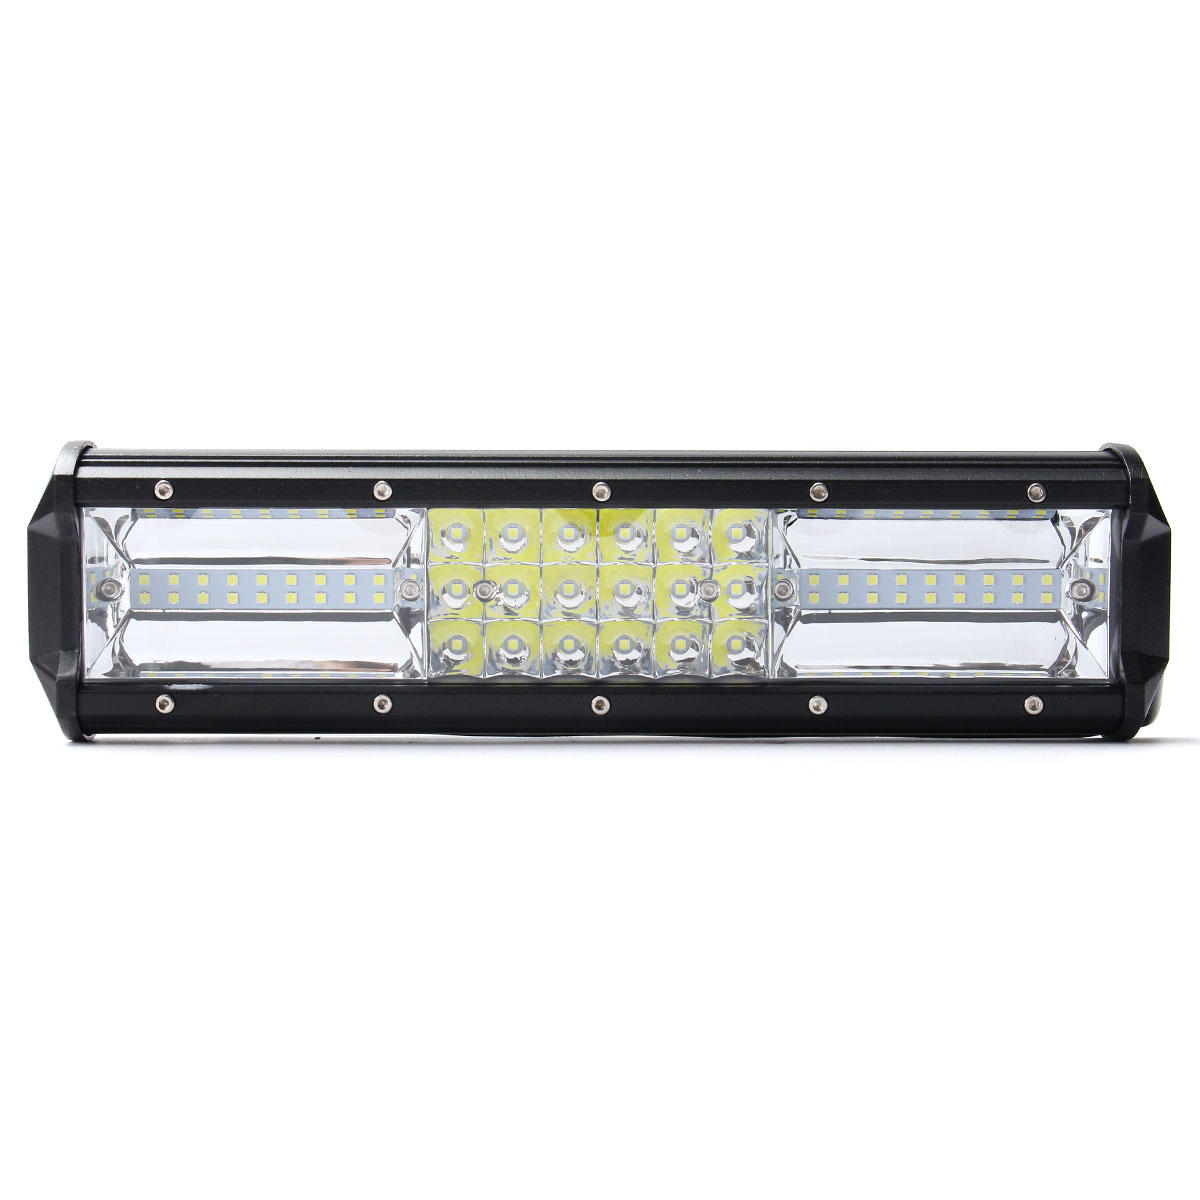 12 inch 324w led light bar flood spot combo off road car truck 10 rh banggood com